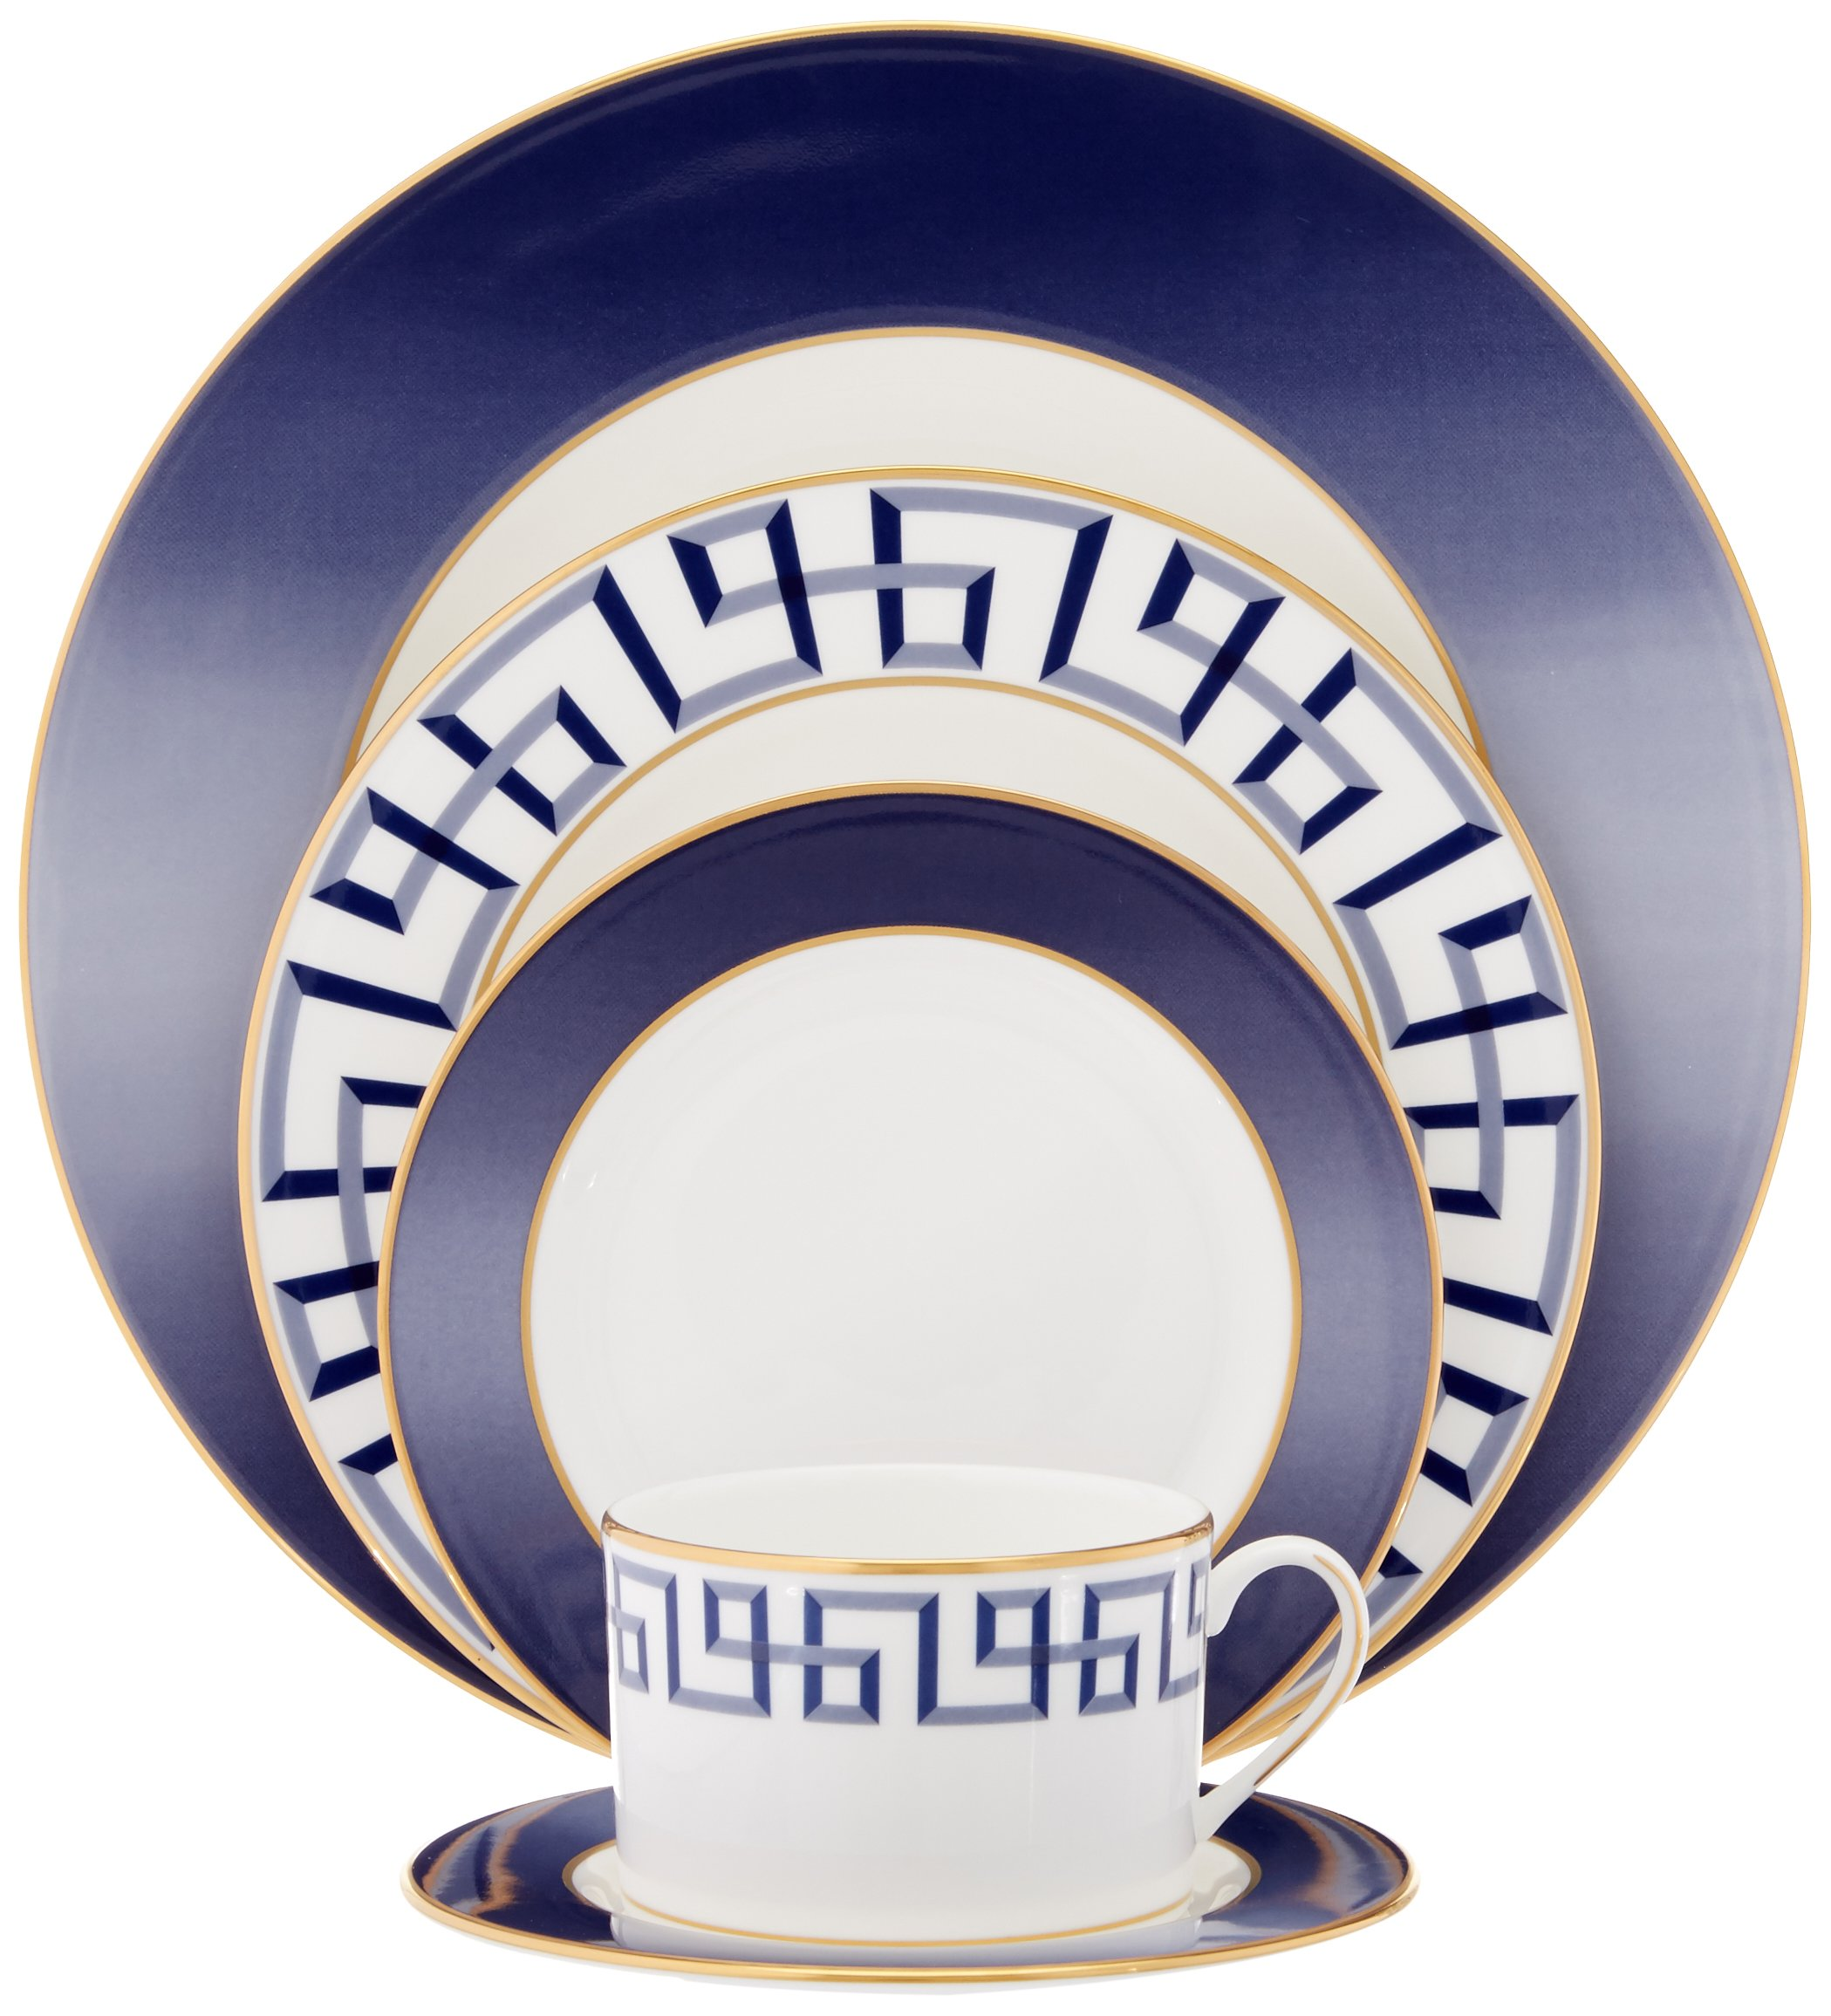 Lenox Gluckstein Darius Gold 5-Piece Place Set - Crafted of Lenox bone china accented with platinum Dishwasher safe Under license by Brian Gluckstein, who has reviewed this product for quality and authenticity - kitchen-tabletop, kitchen-dining-room, dinnerware-sets - 81V0rq3B3QL -